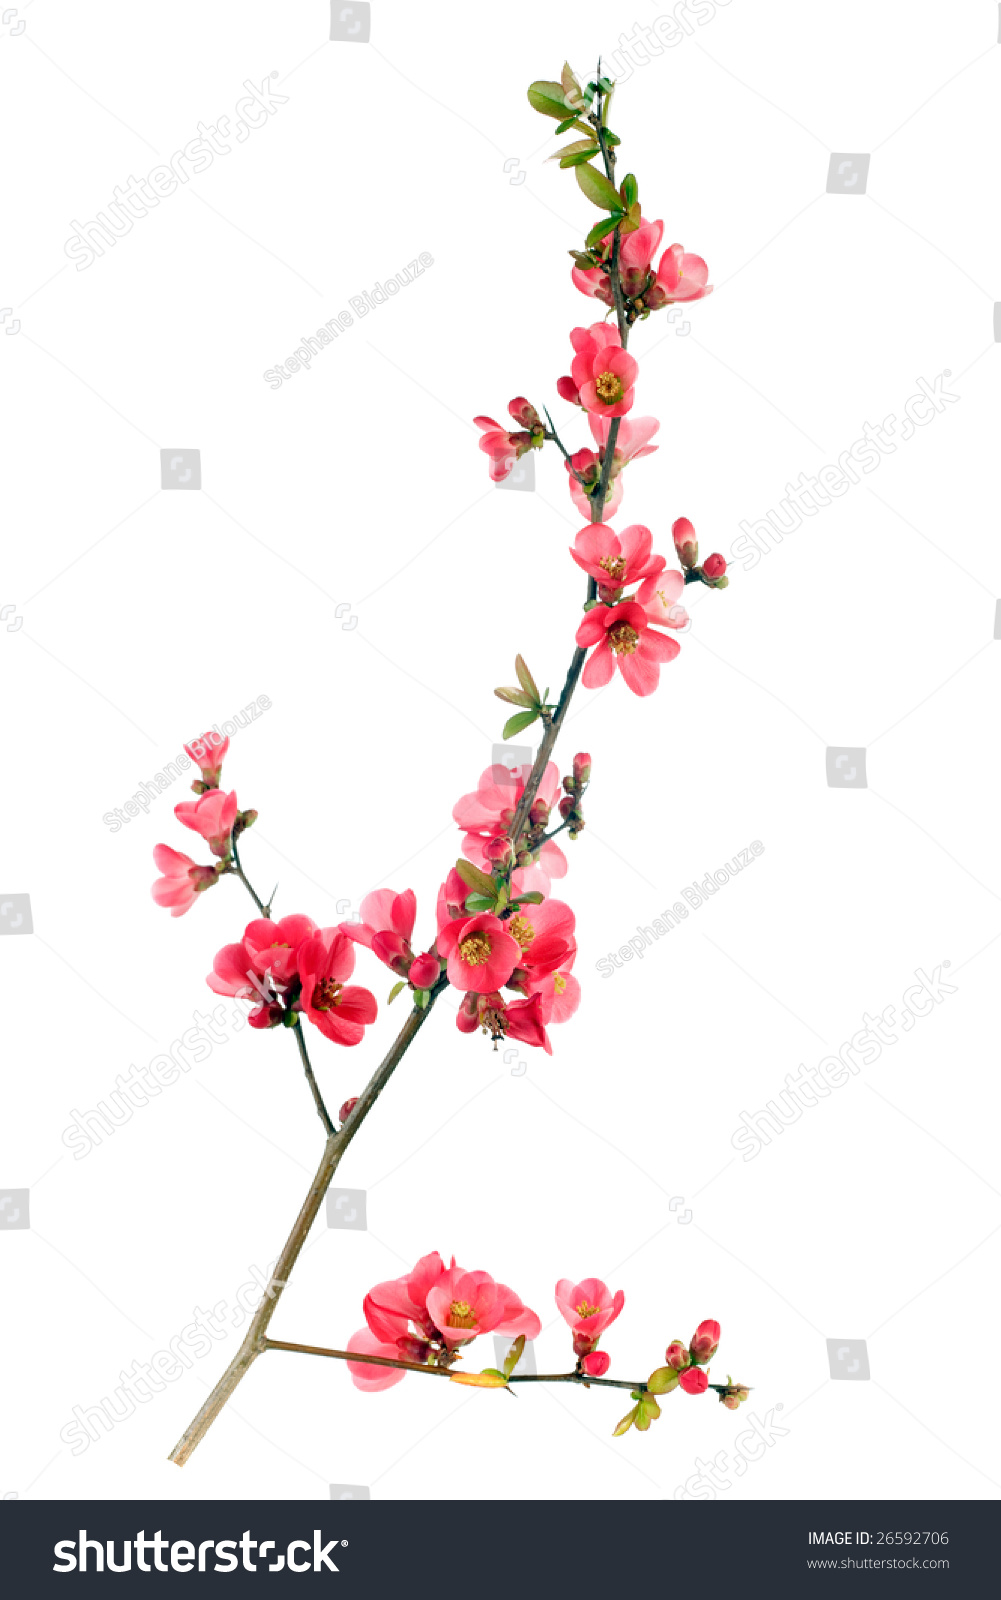 Branch japanese quince blossom springtime stock photo 26592706 branch of japanese quince blossom at springtime biocorpaavc Image collections